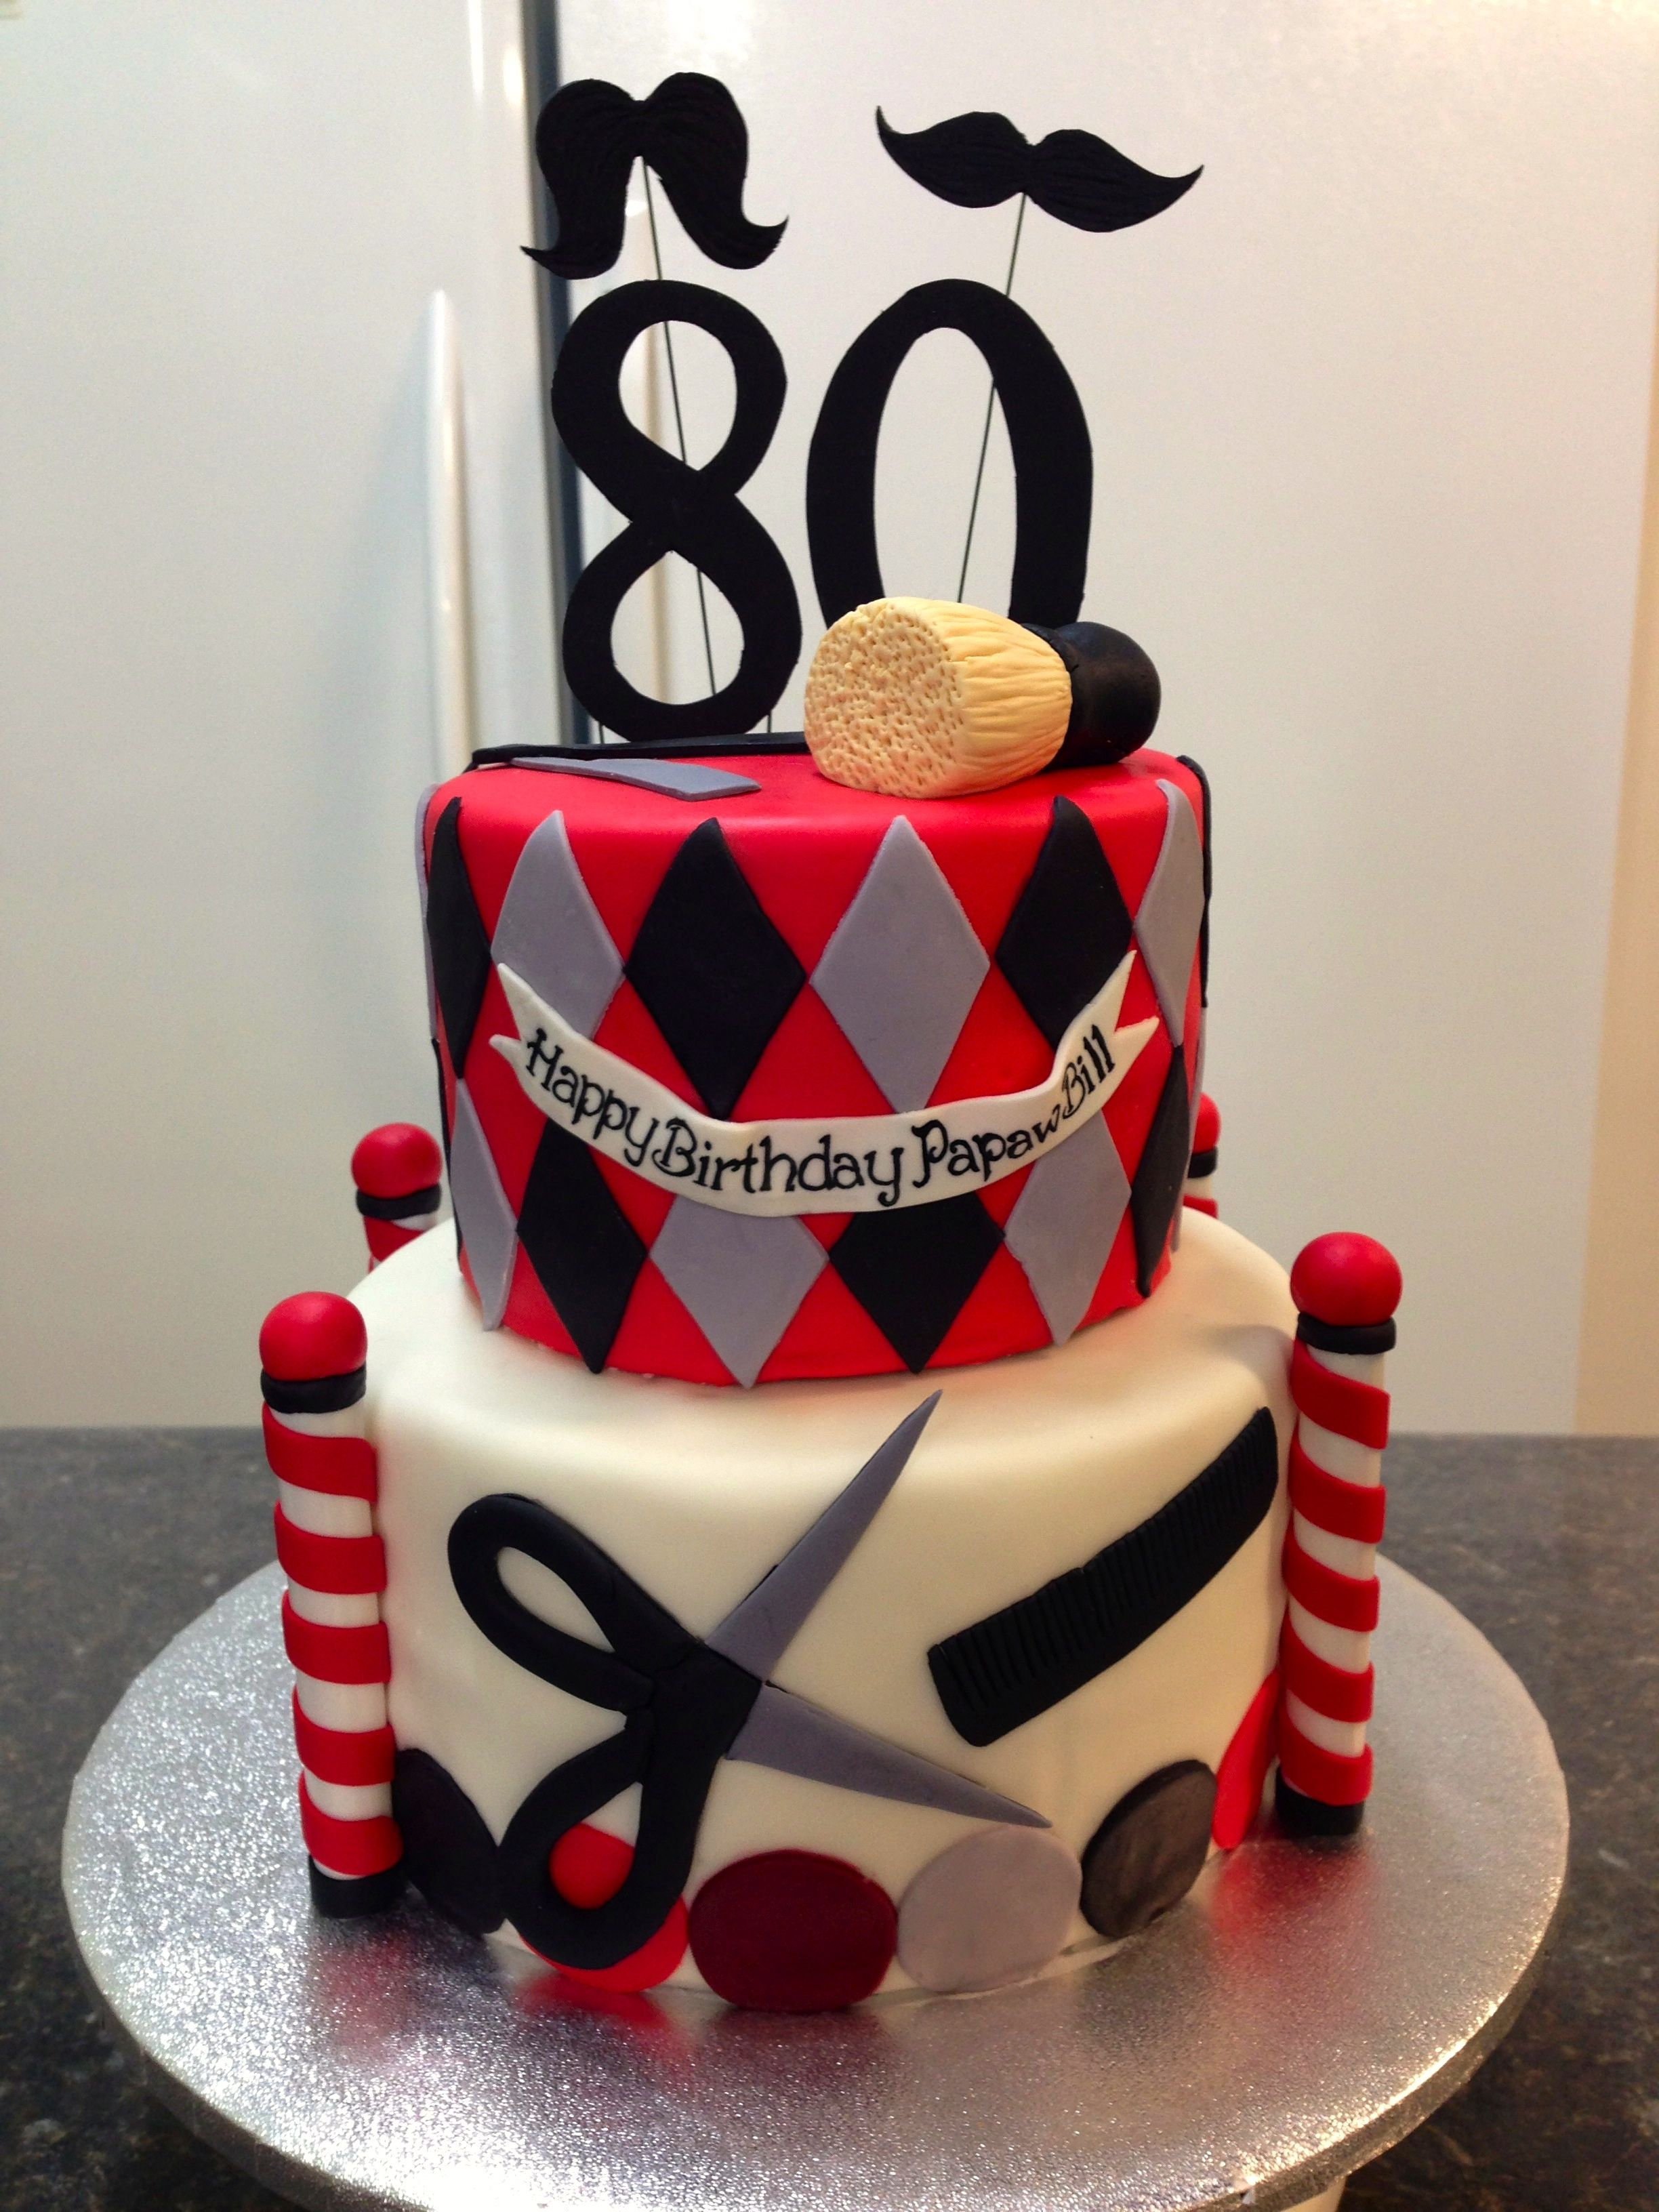 Birthday Cake For A Barbers 80th Birthday Dads Party